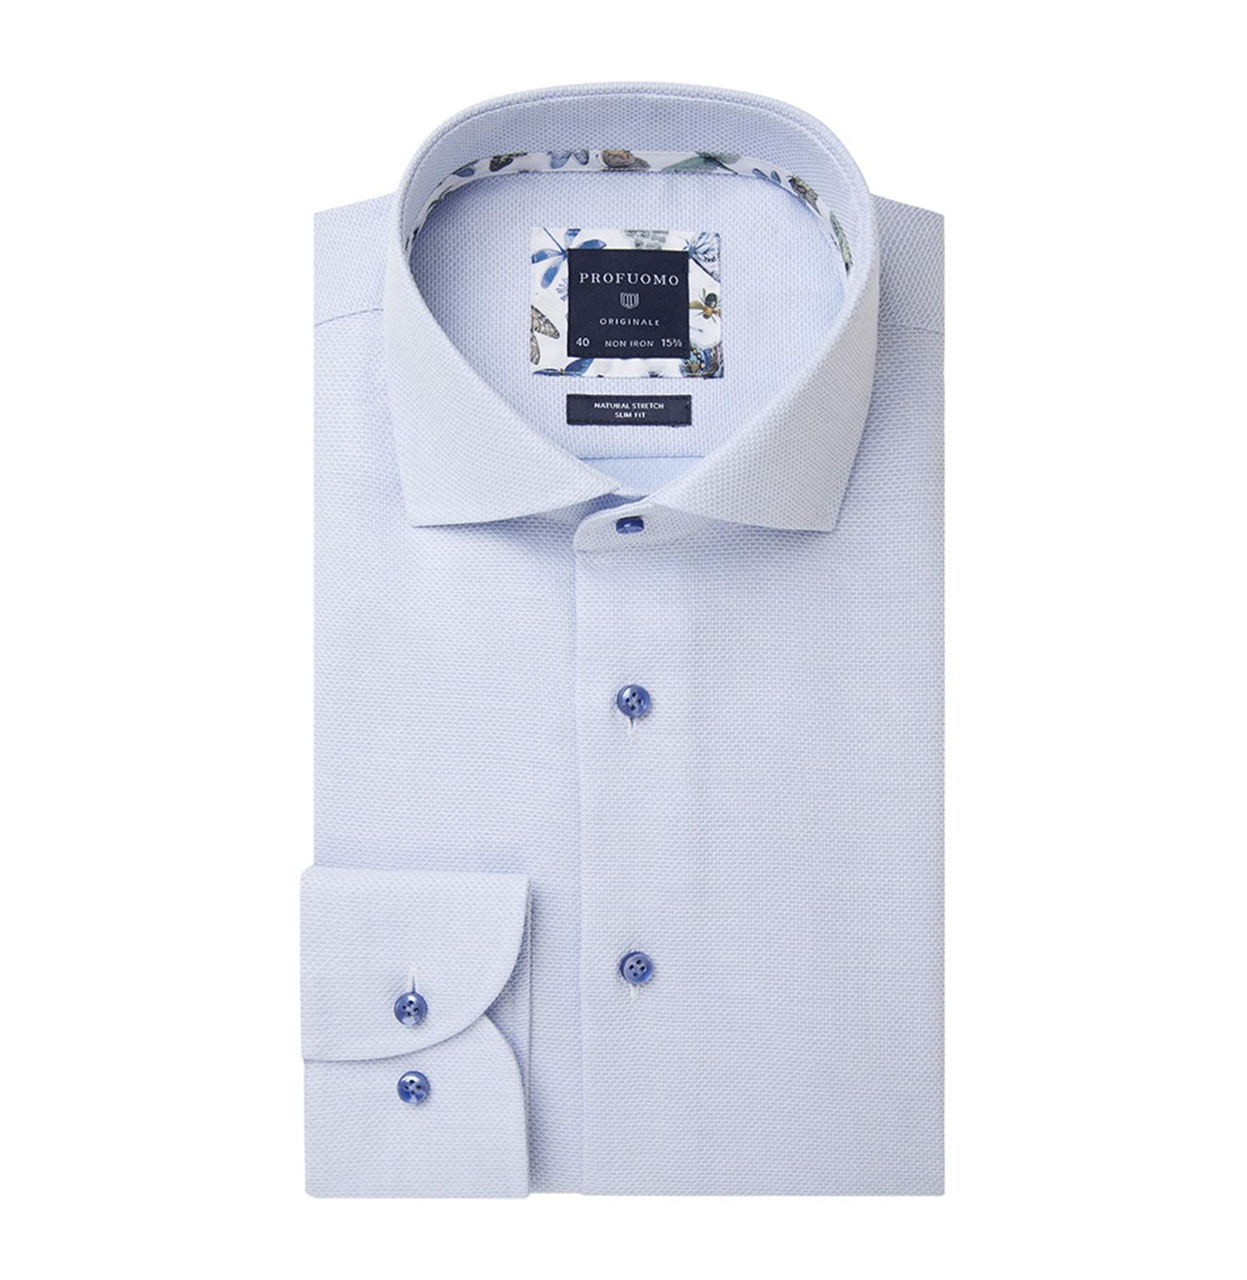 Profuomo Shirt PPSH1A1024 M PPSH1A1024 blauw Maat 39